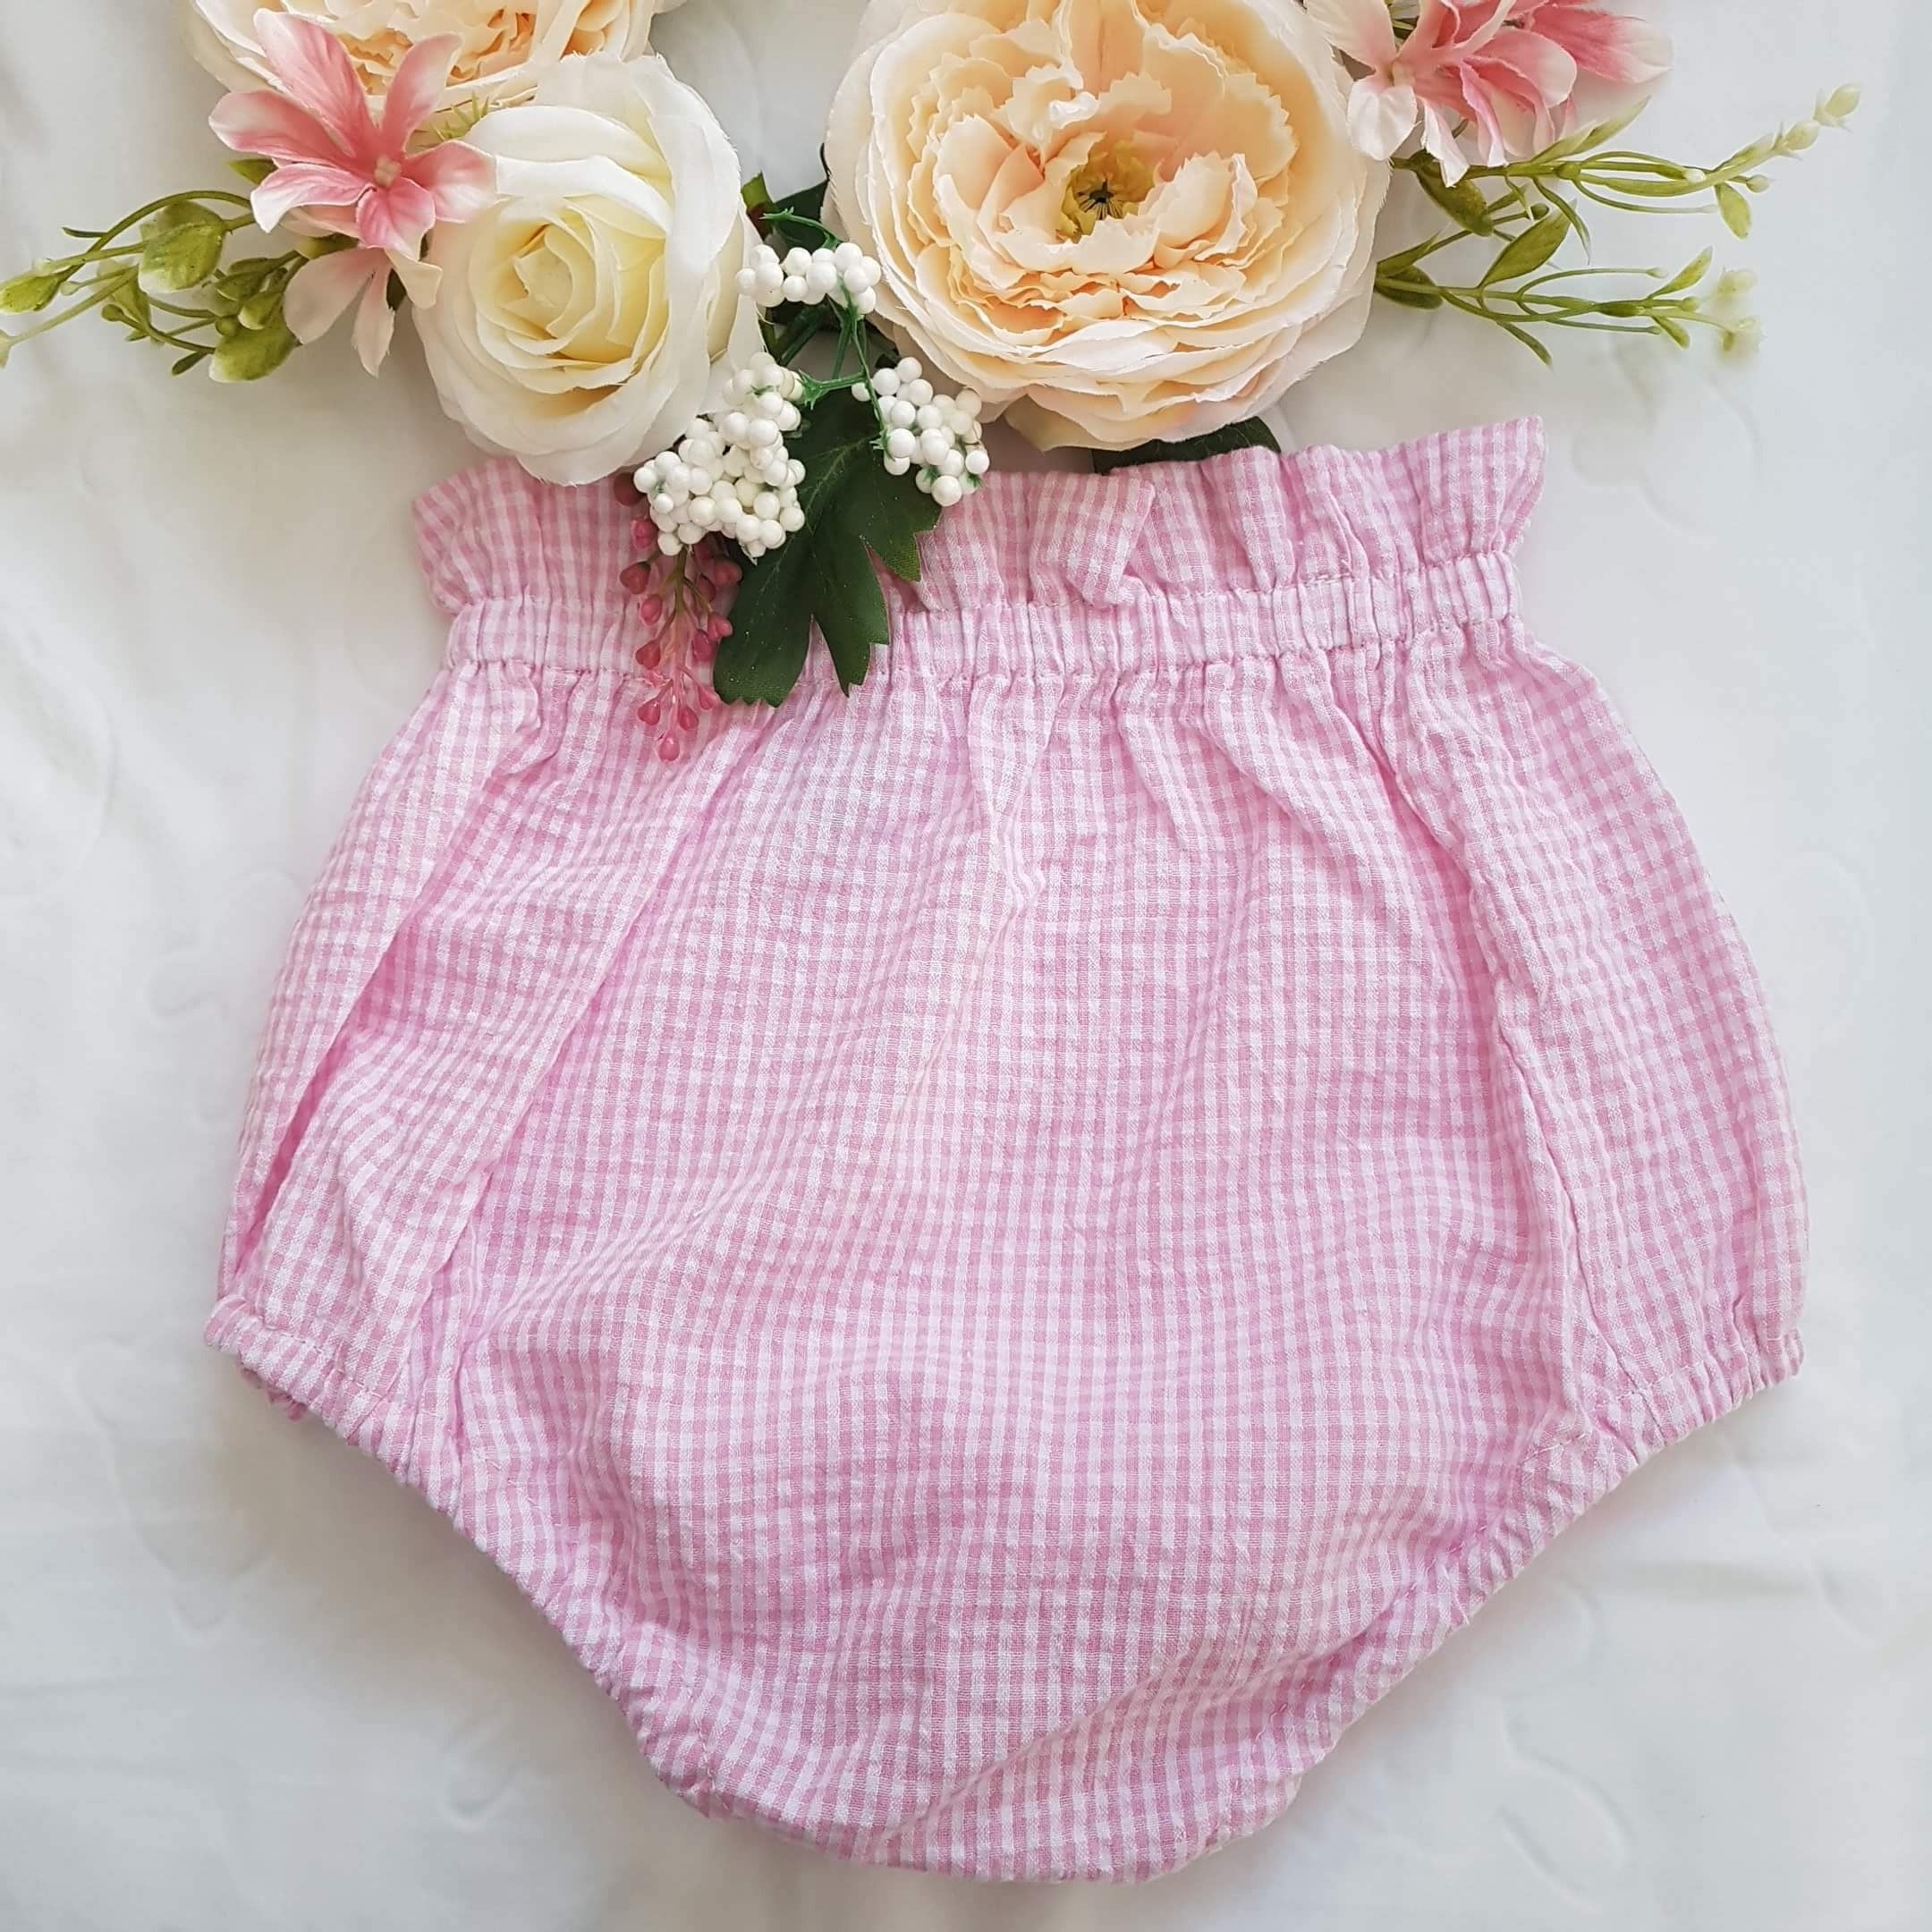 Gingham seersucker bloomers